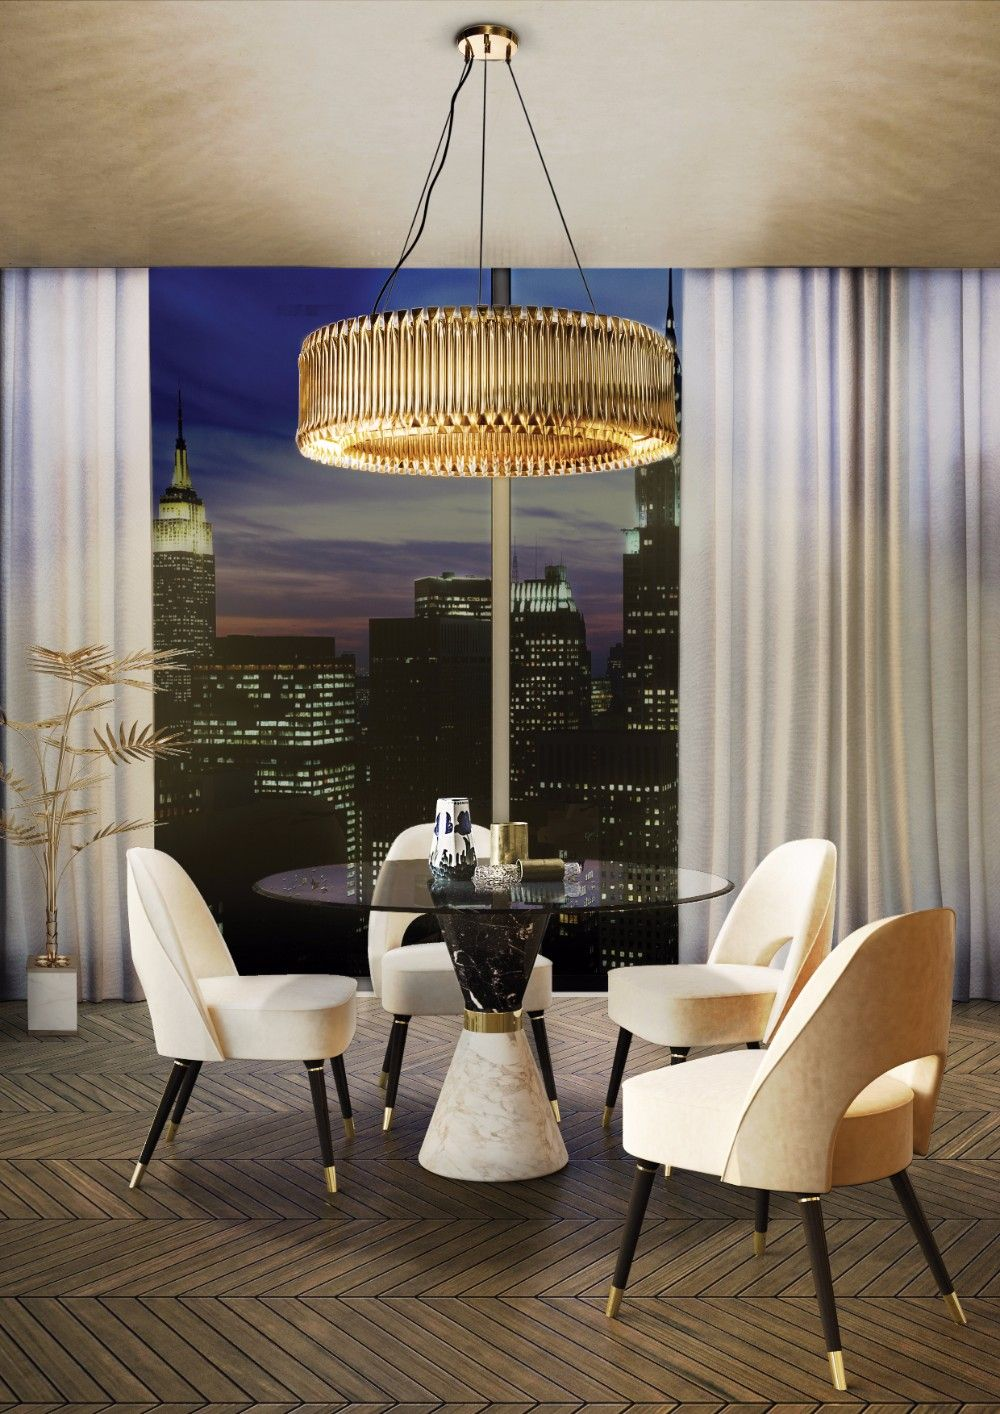 Take a look at this unique dining room lighting idea and ...